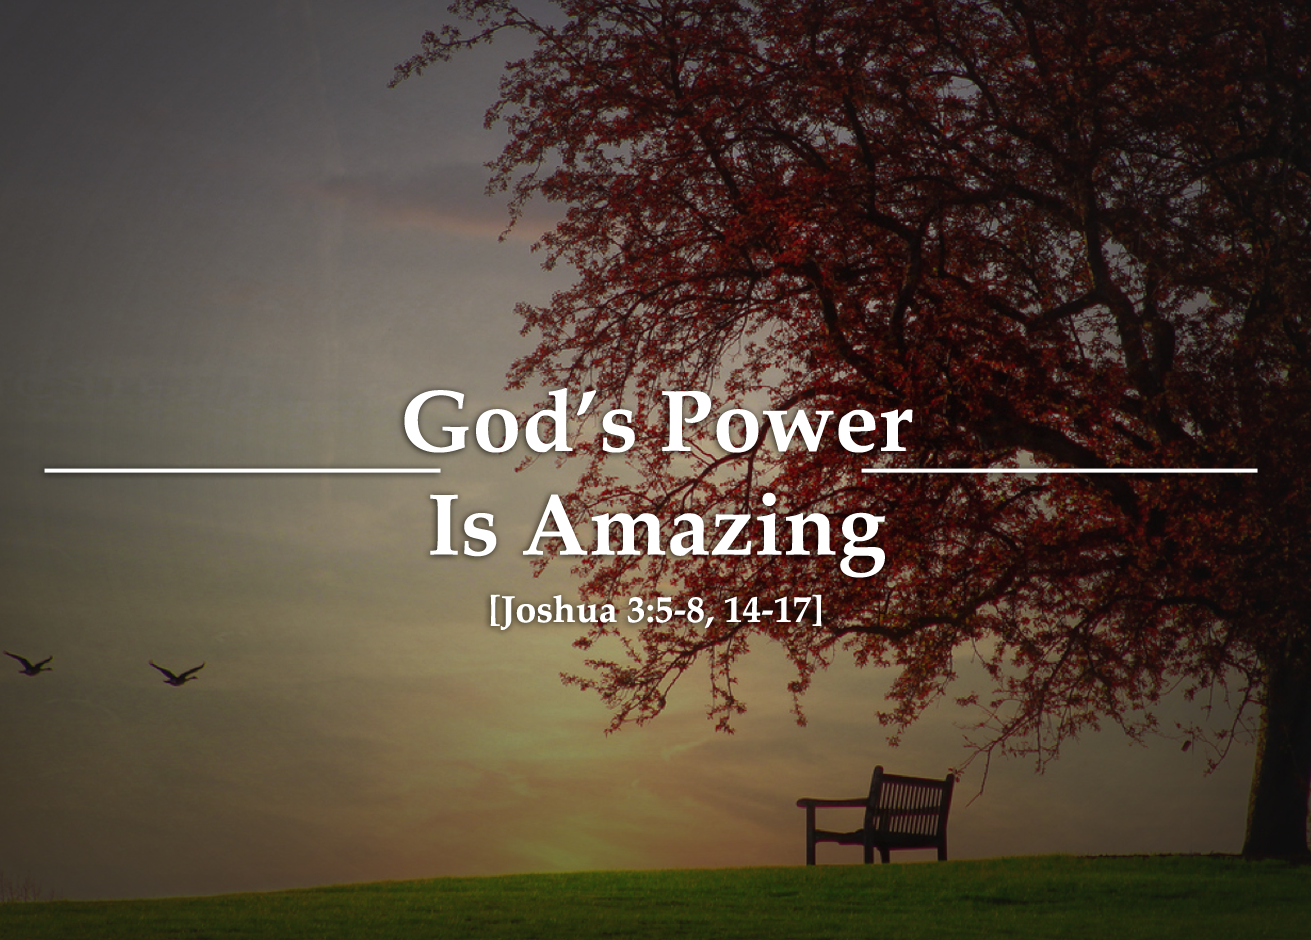 Gods Power Is Amazing More at http://ibibleverses.com ...